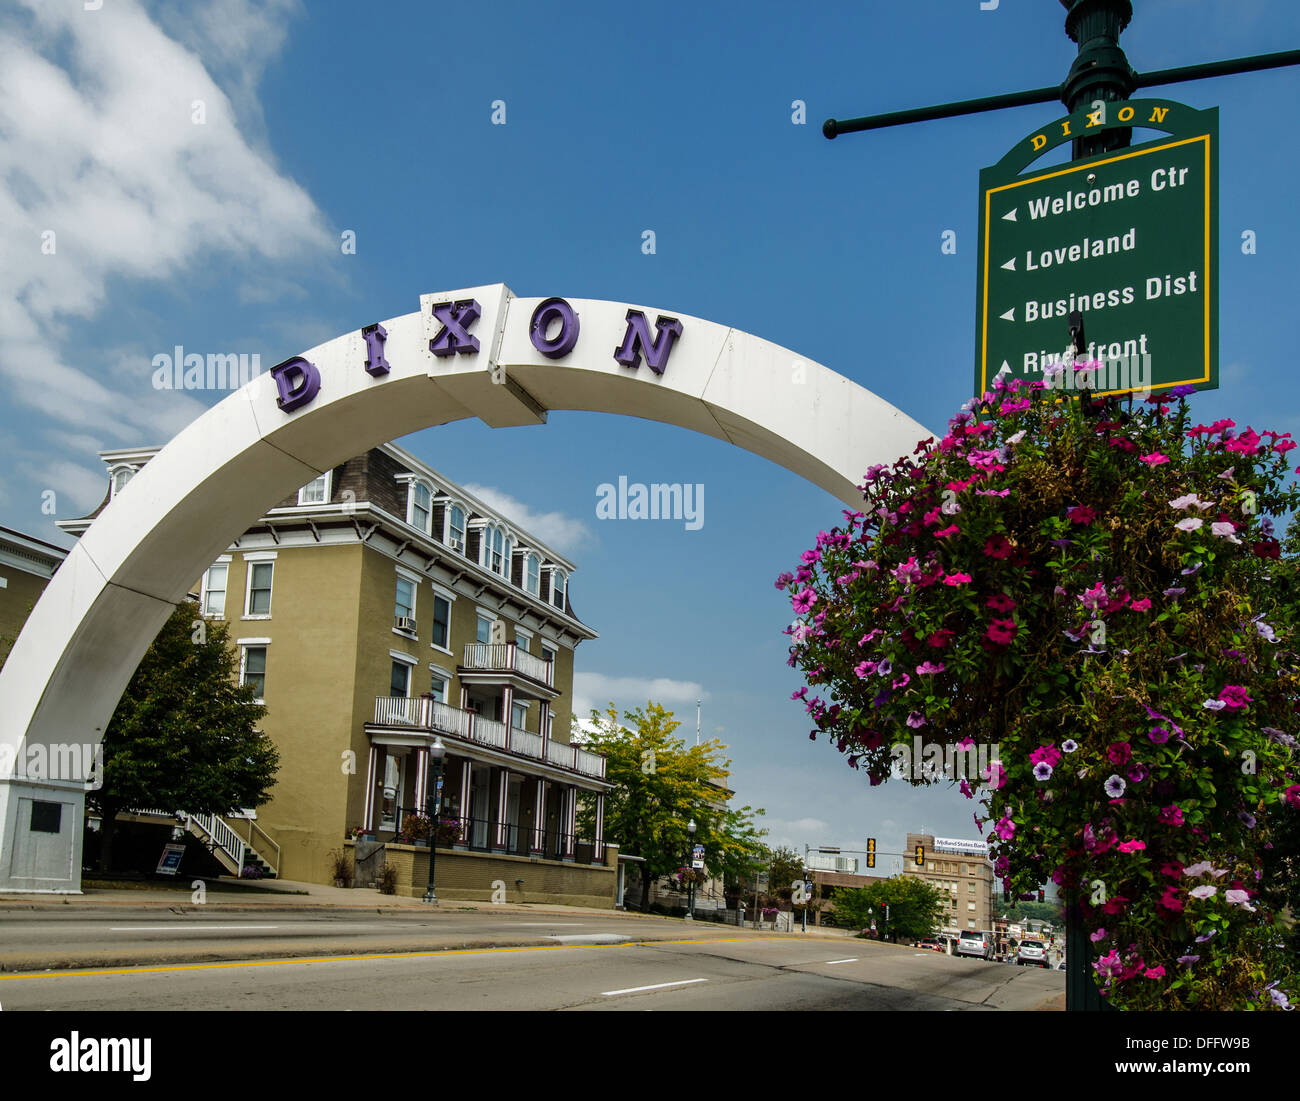 Arch in Dixon, Illinois, a city along the Lincoln Highway. - Stock Image